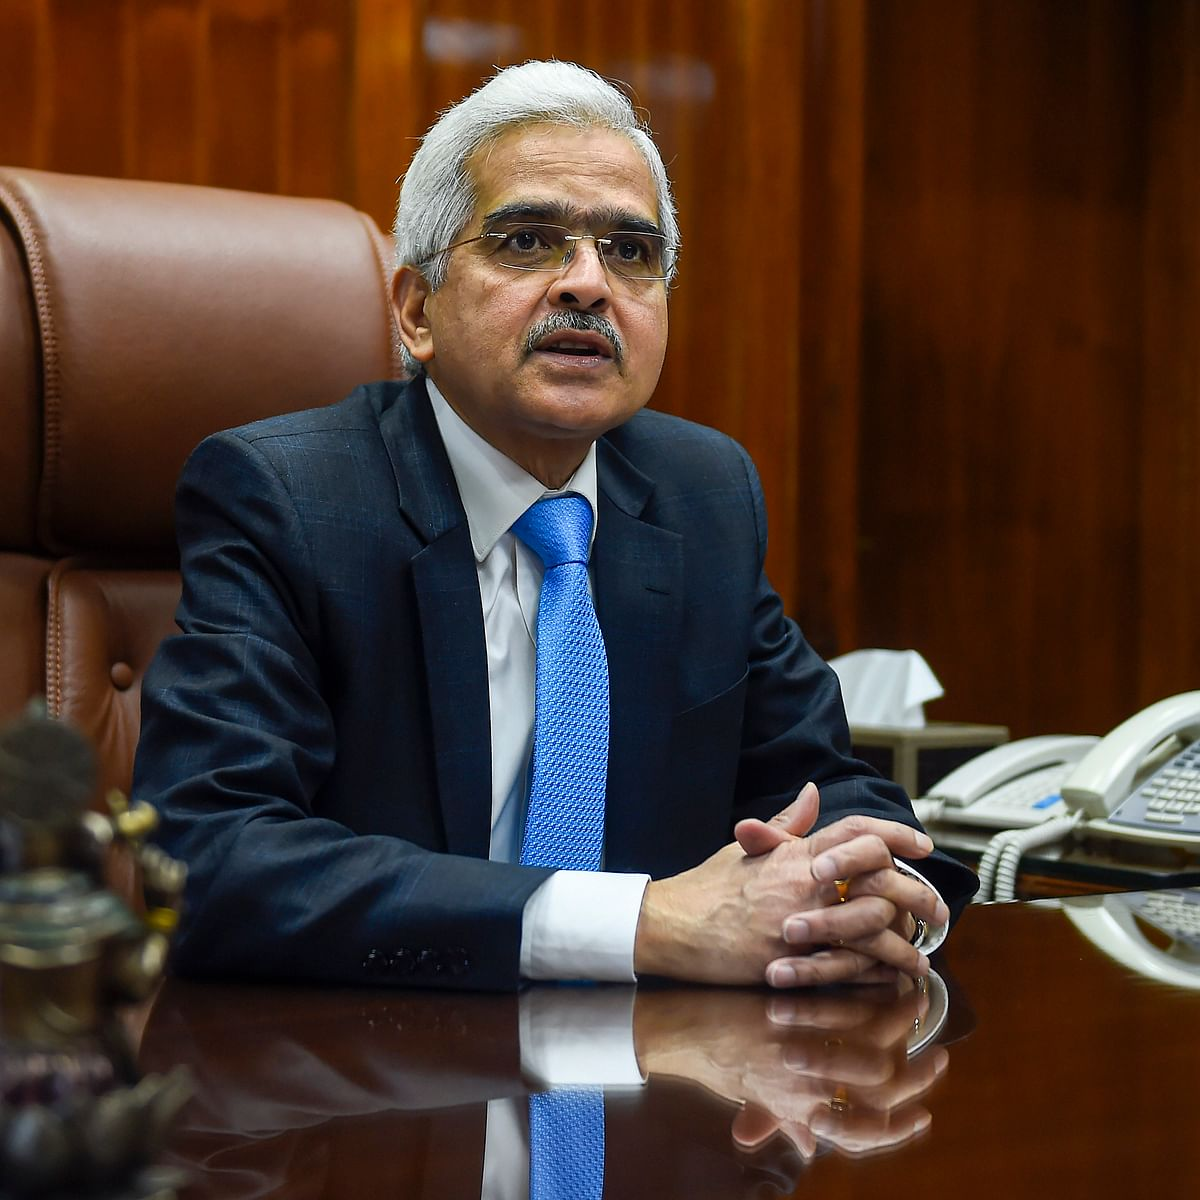 RBI Governor Shaktikanta Das tests positive for COVID-19, says 'will continue to work from isolation'